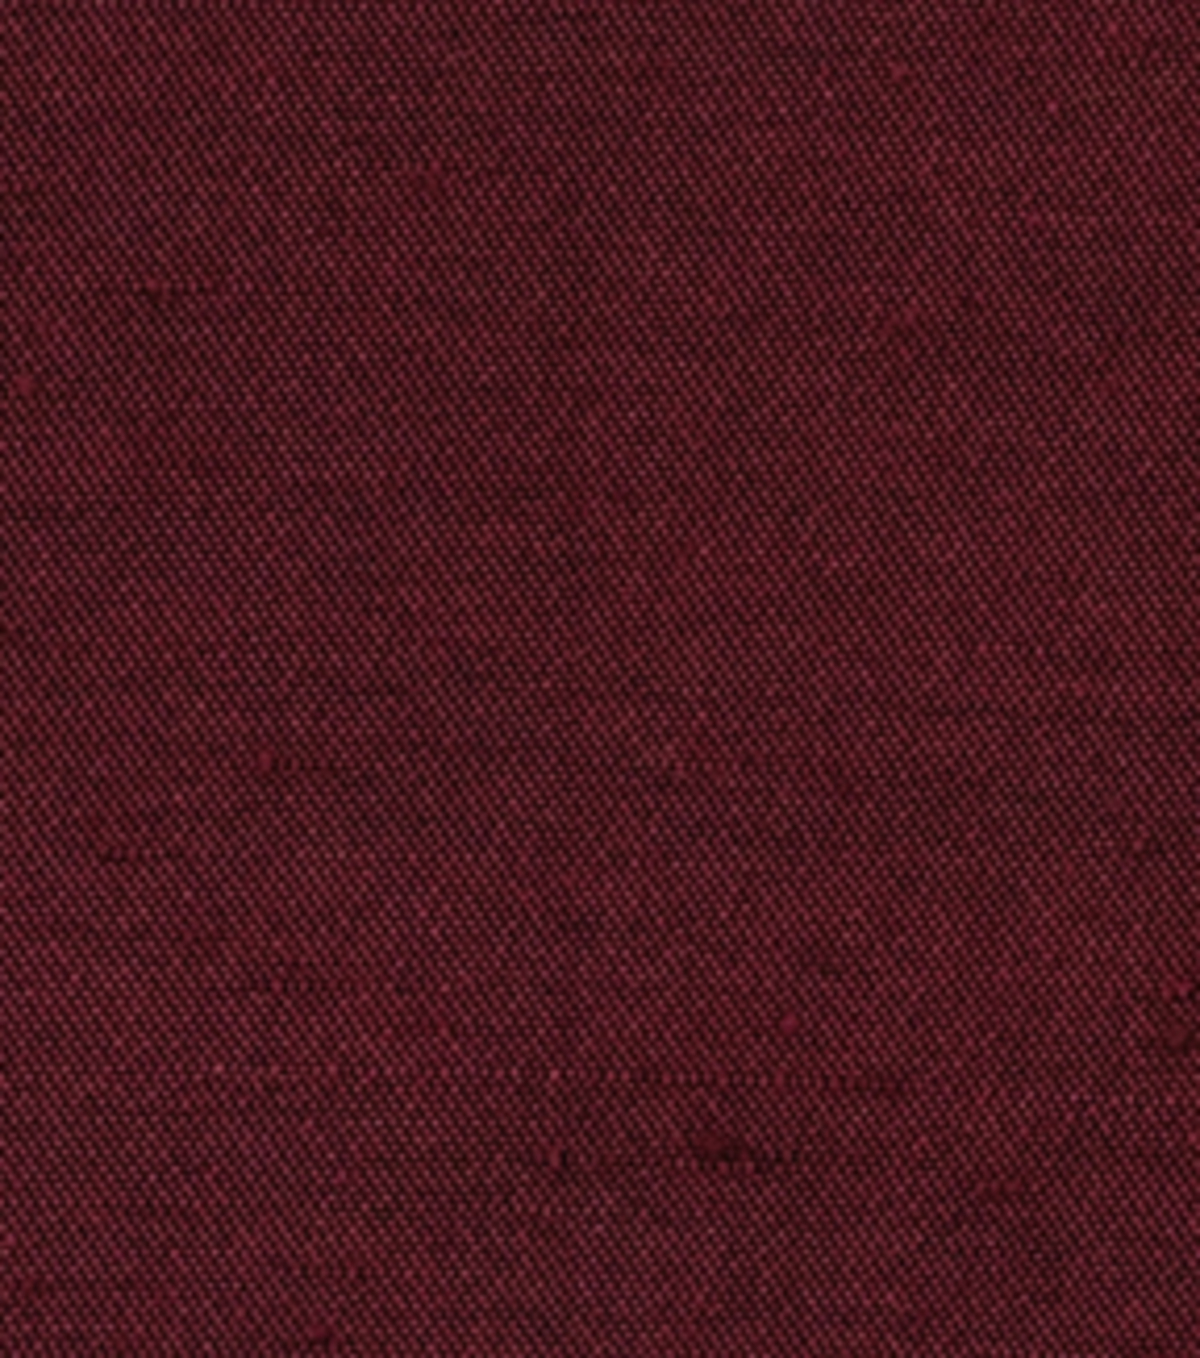 Home Decor 8\u0022x8\u0022 Fabric Swatch-Signature Series Antique Satin Valentine